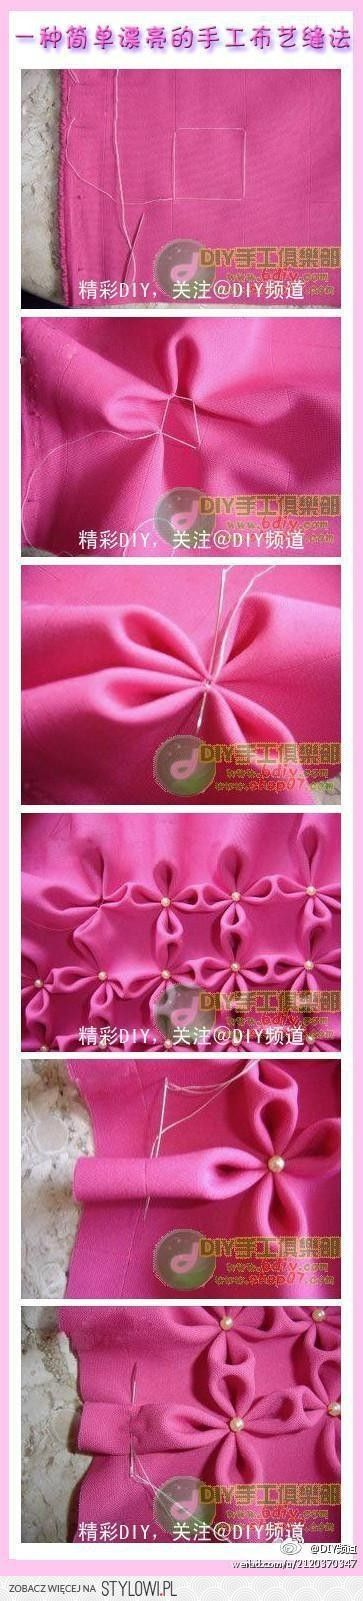 Flowers on the fabric